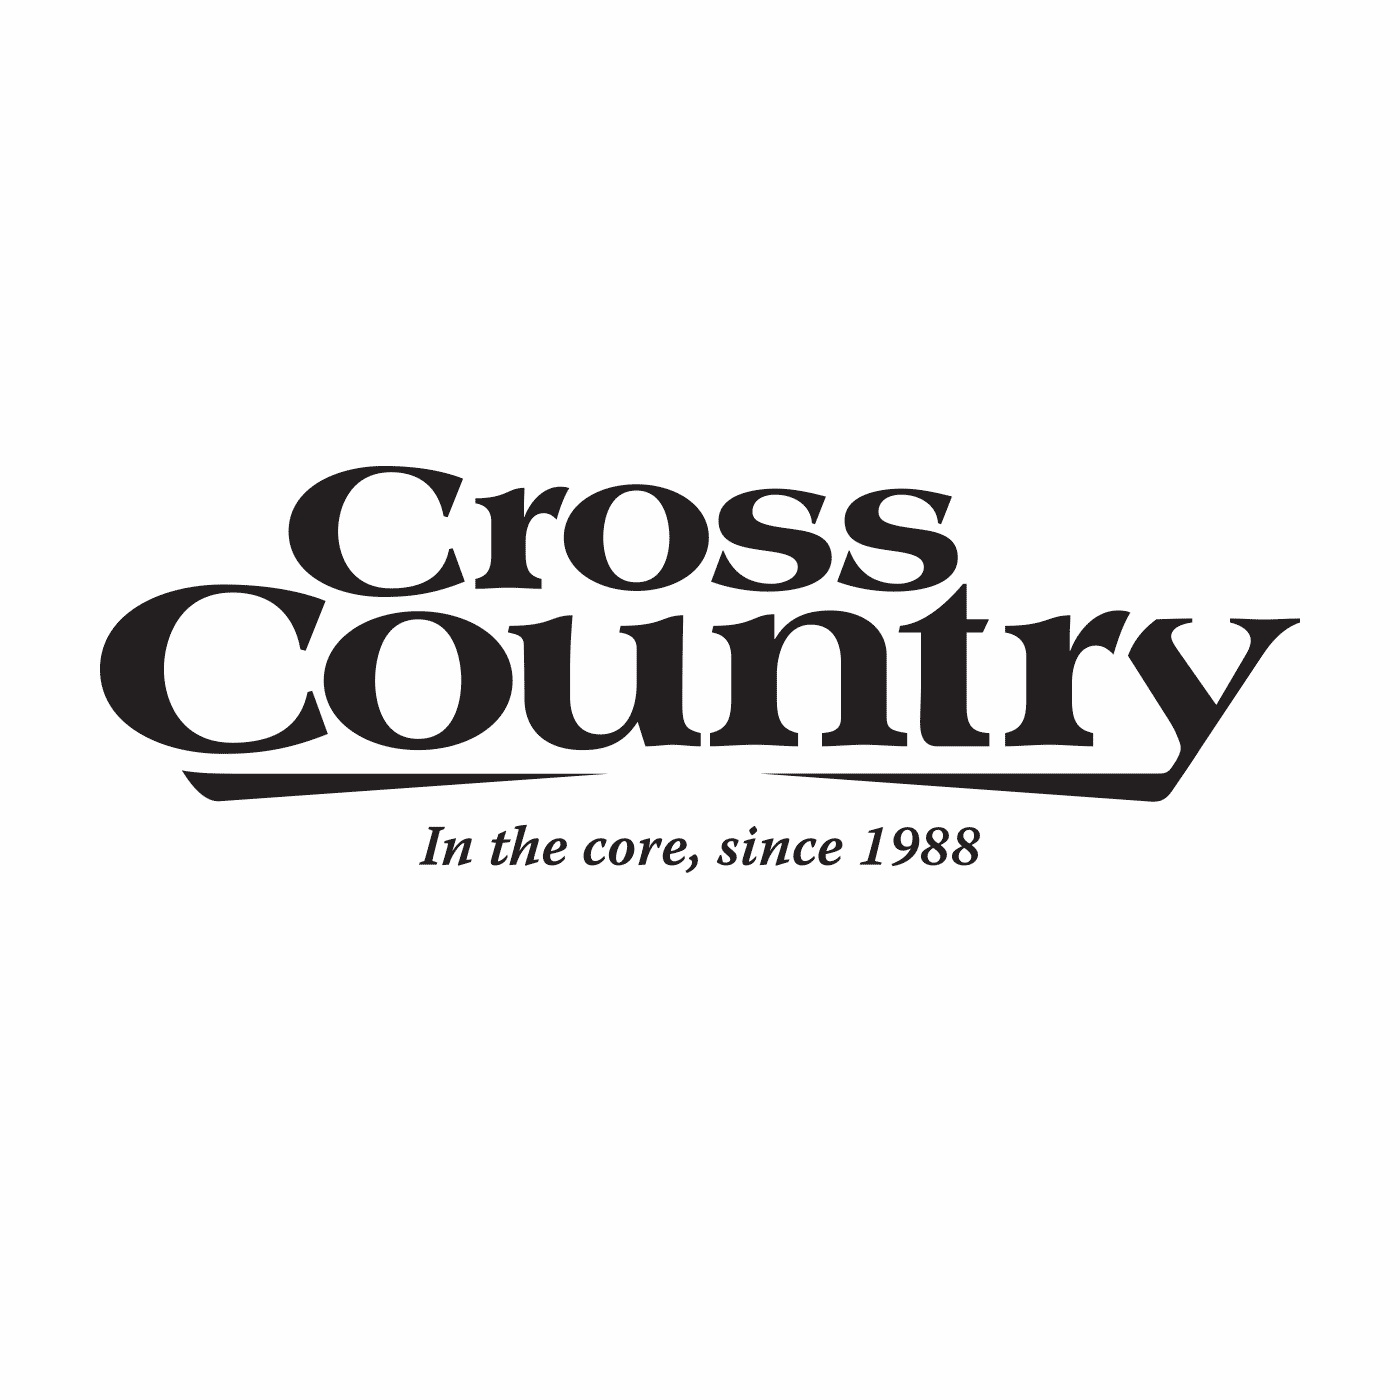 Cross Country Magazine – In the Core since 1988